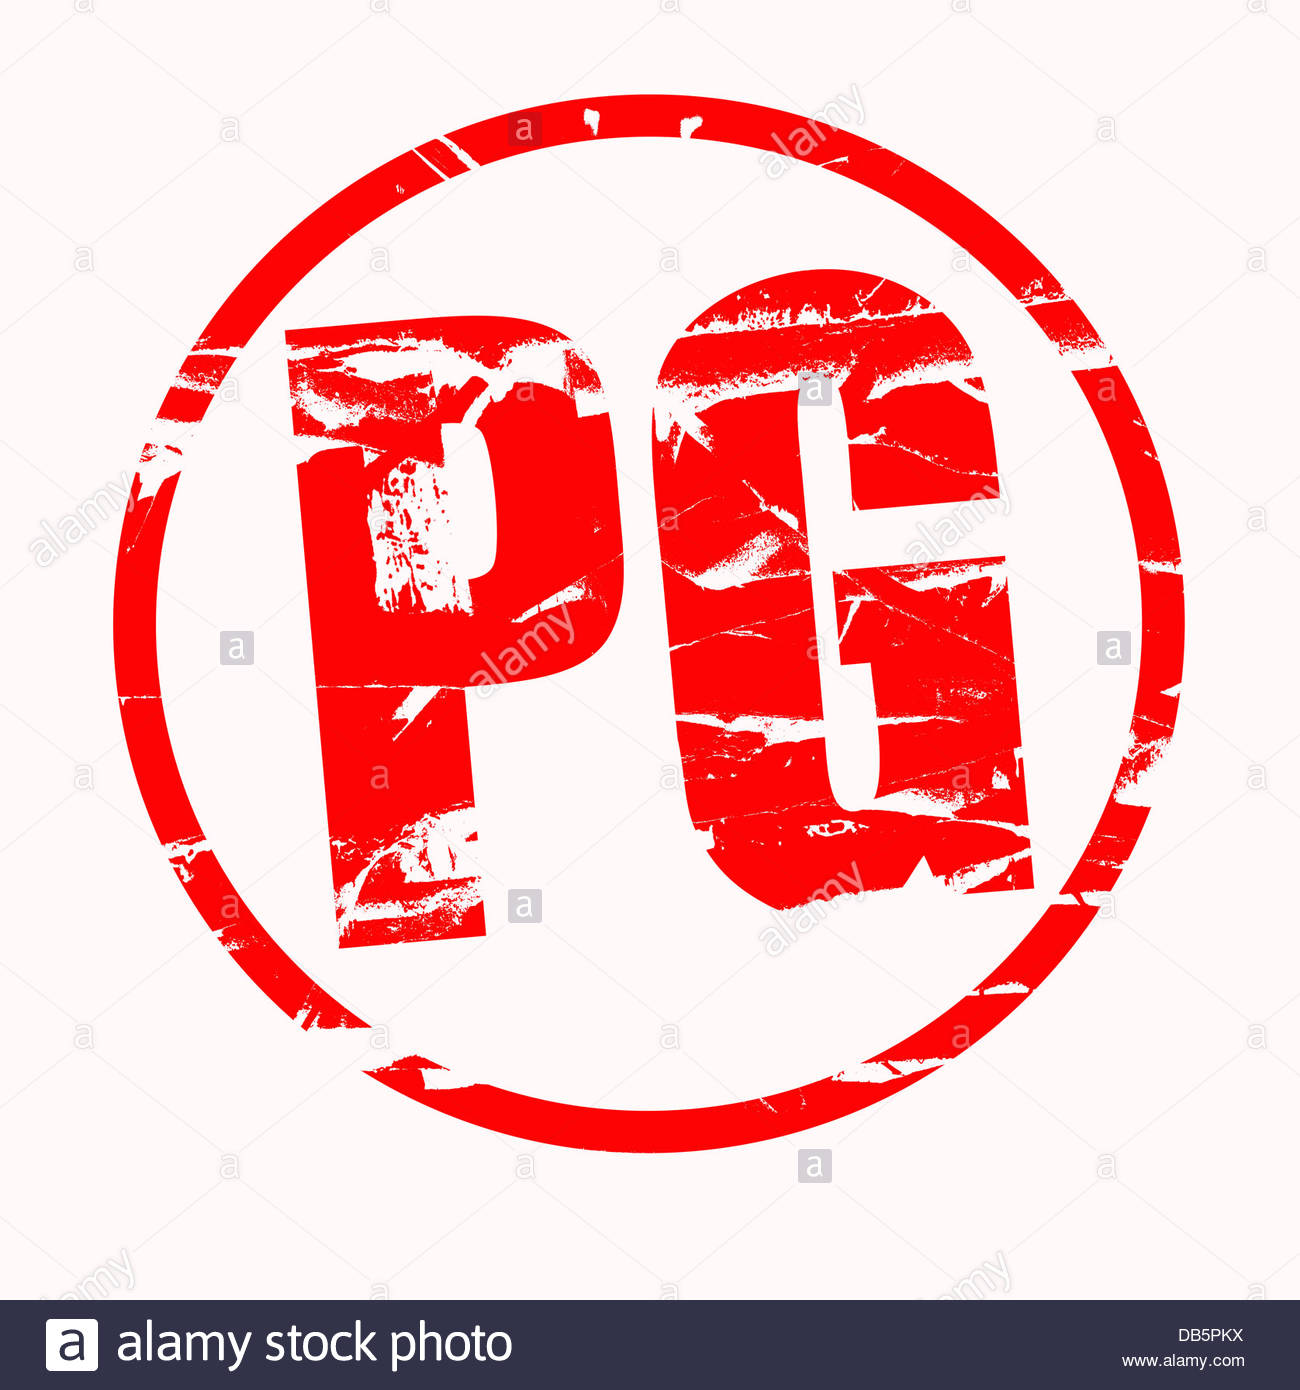 Digital composite Rubber stamp effect. PG parental Guidance - Stock Image